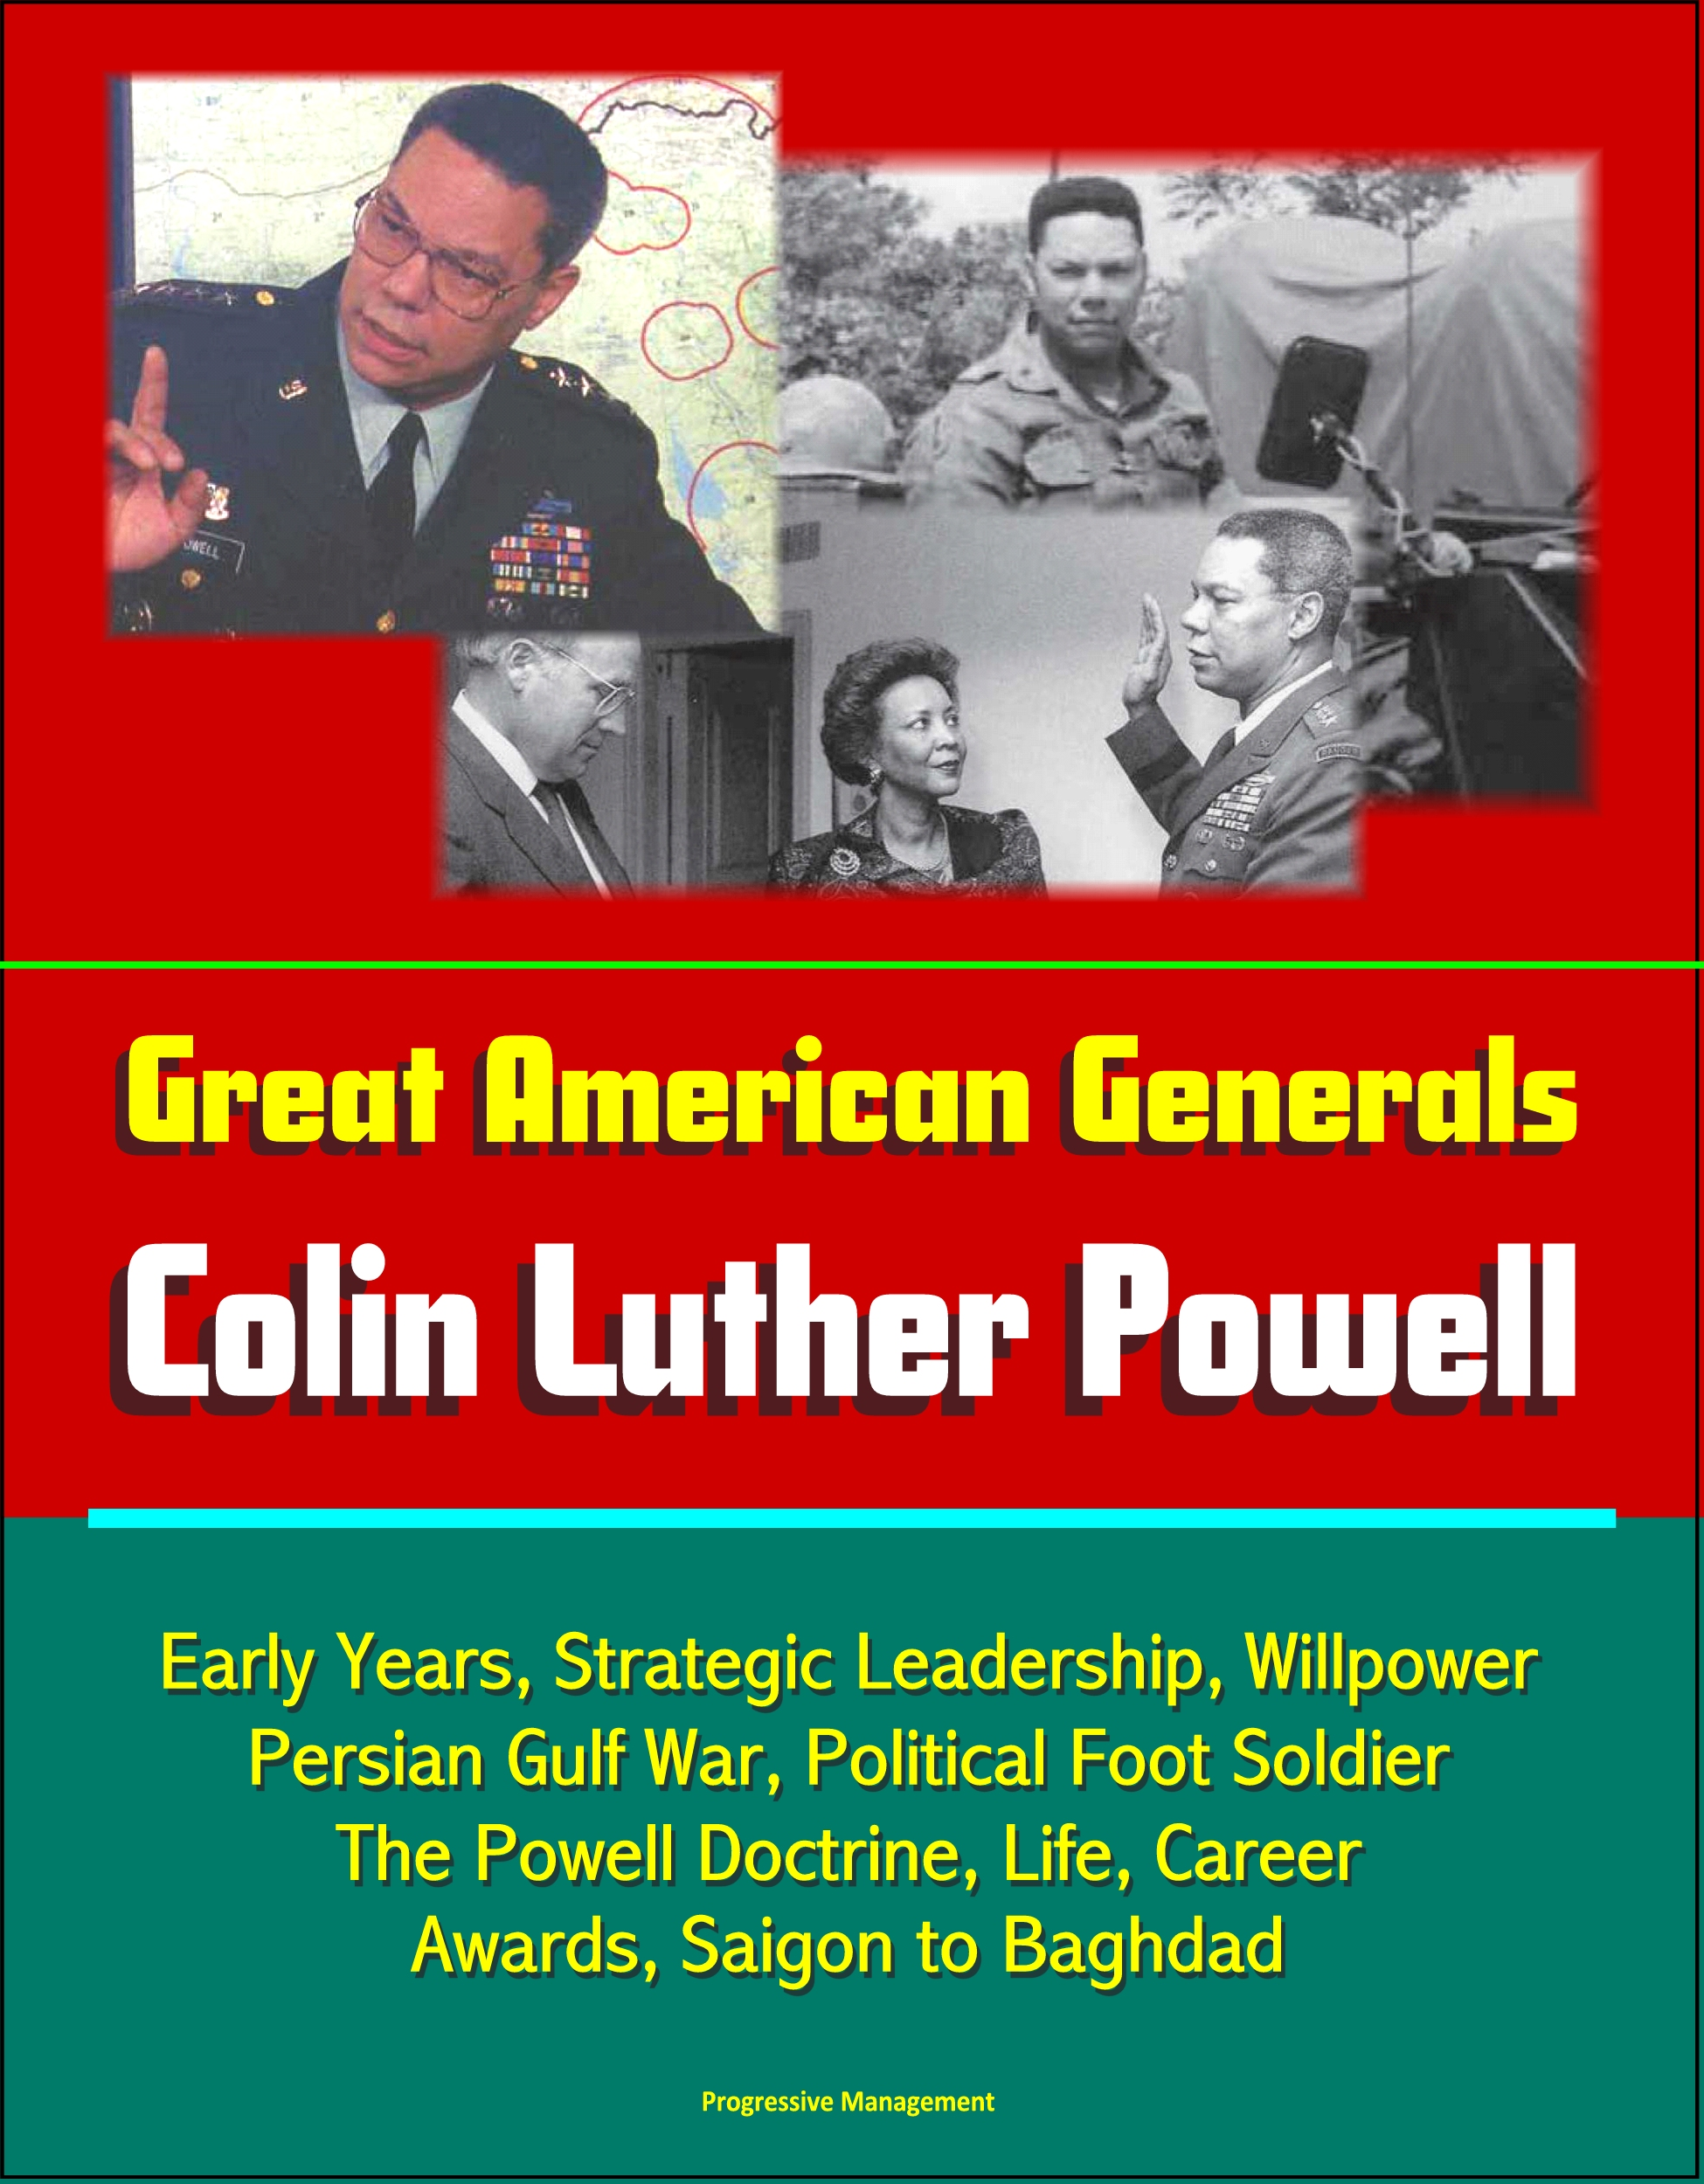 a report on the life of colin luther powell Here's a look at the life of colin powell, former secretary of state and chairman of the joint chiefs of staff.